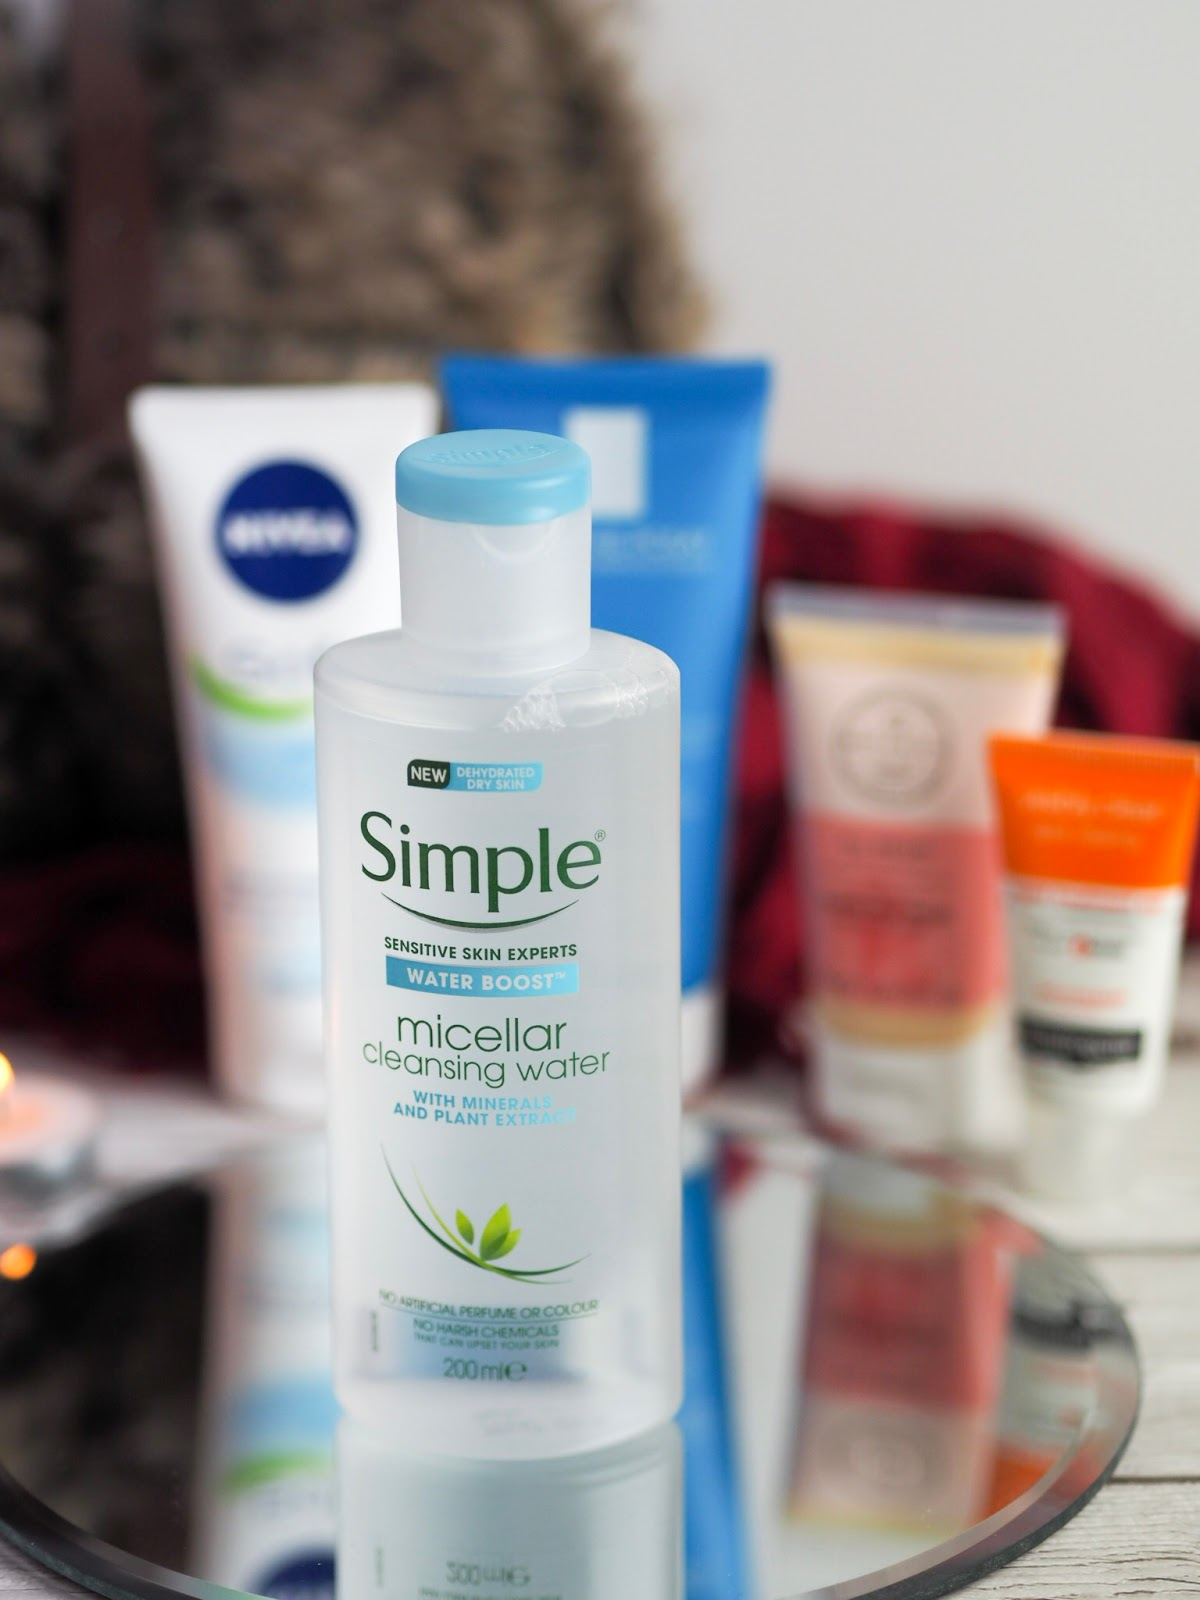 Simple micellar water on mirror plate